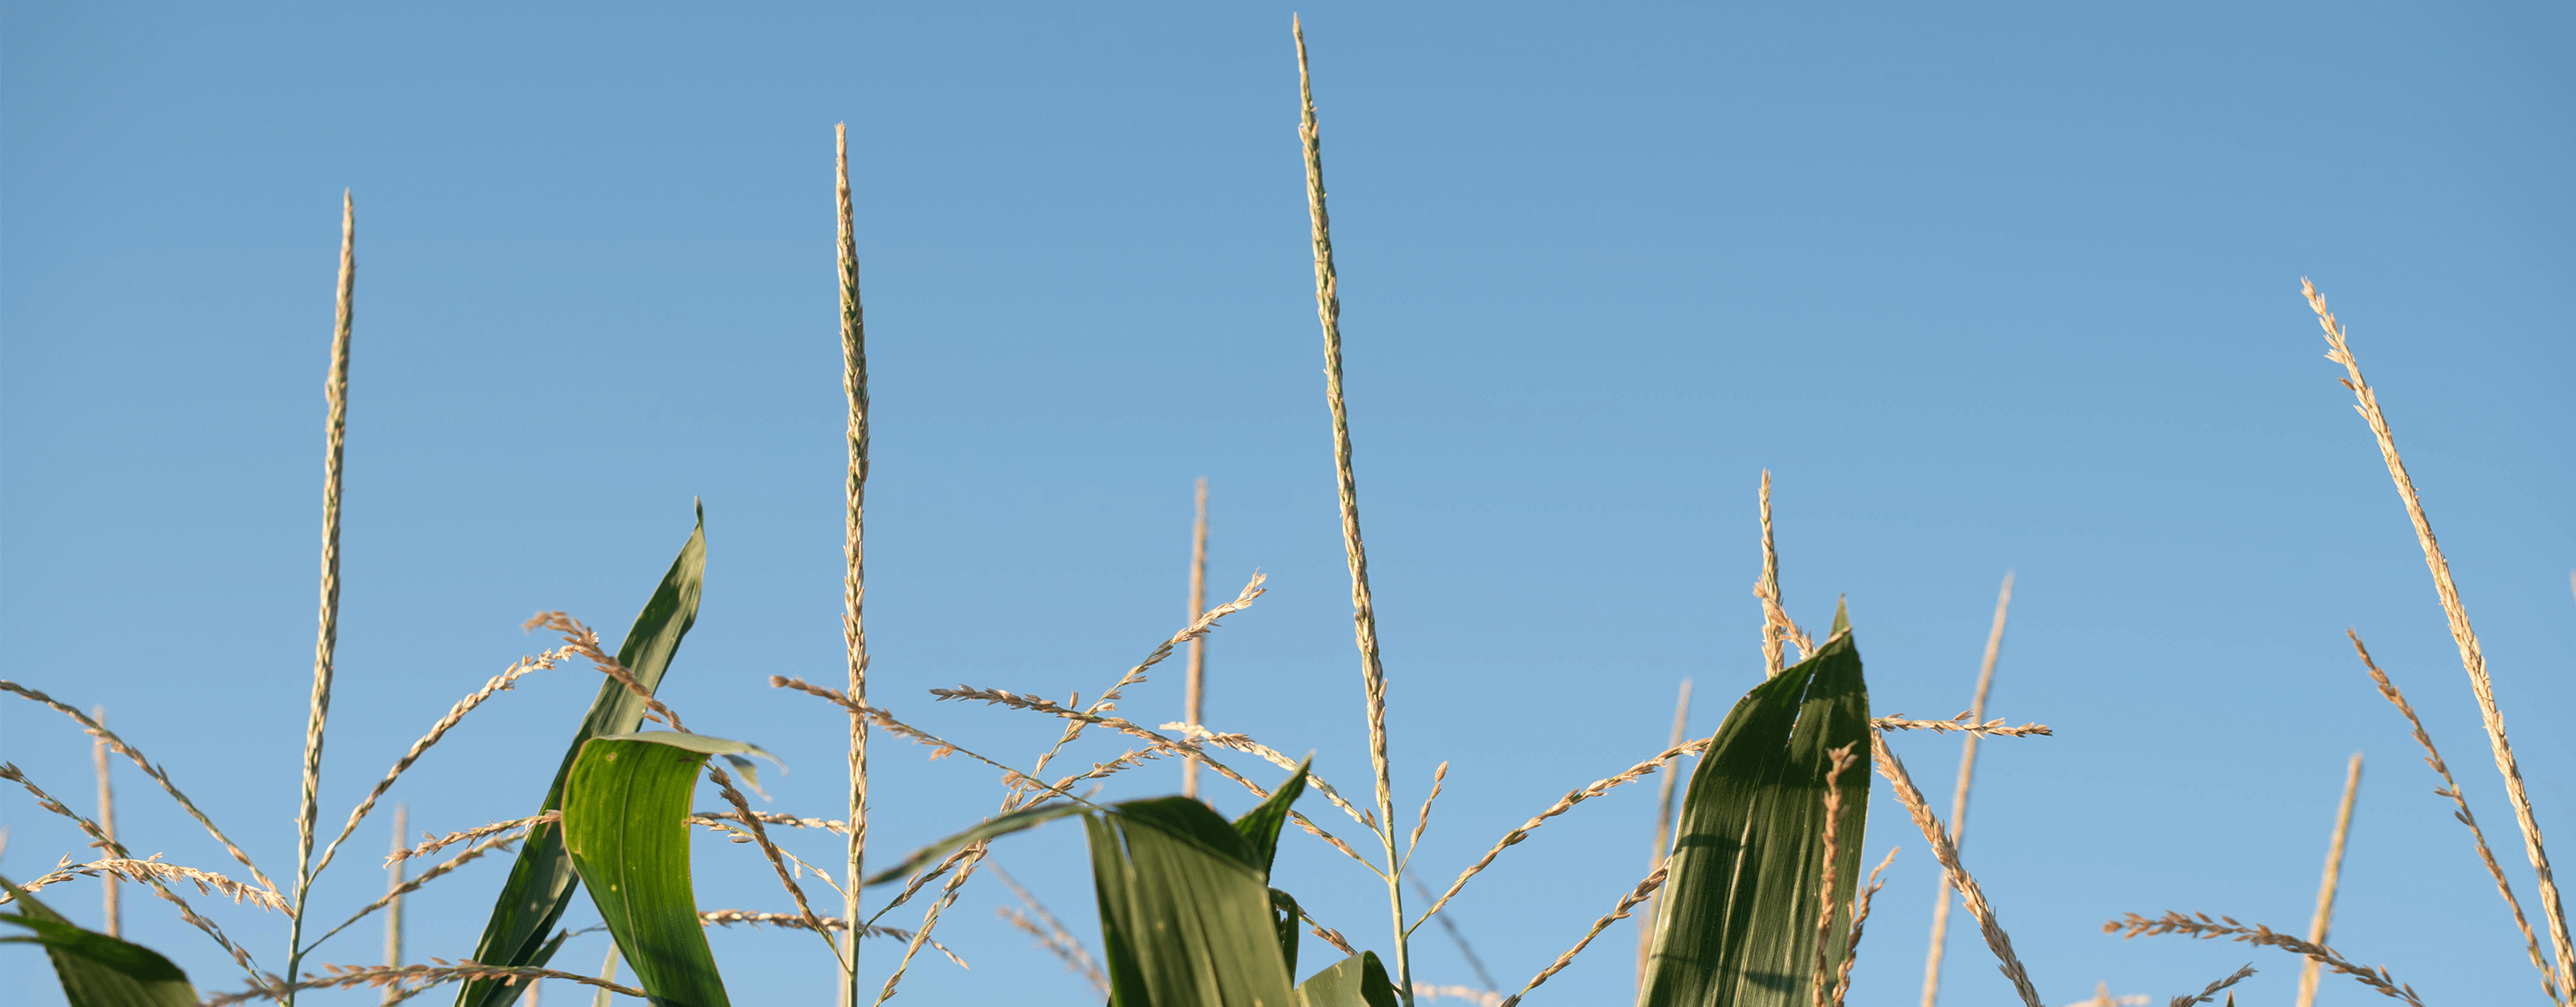 The Tops Of Corn Stalks In A SUSTAIN Field